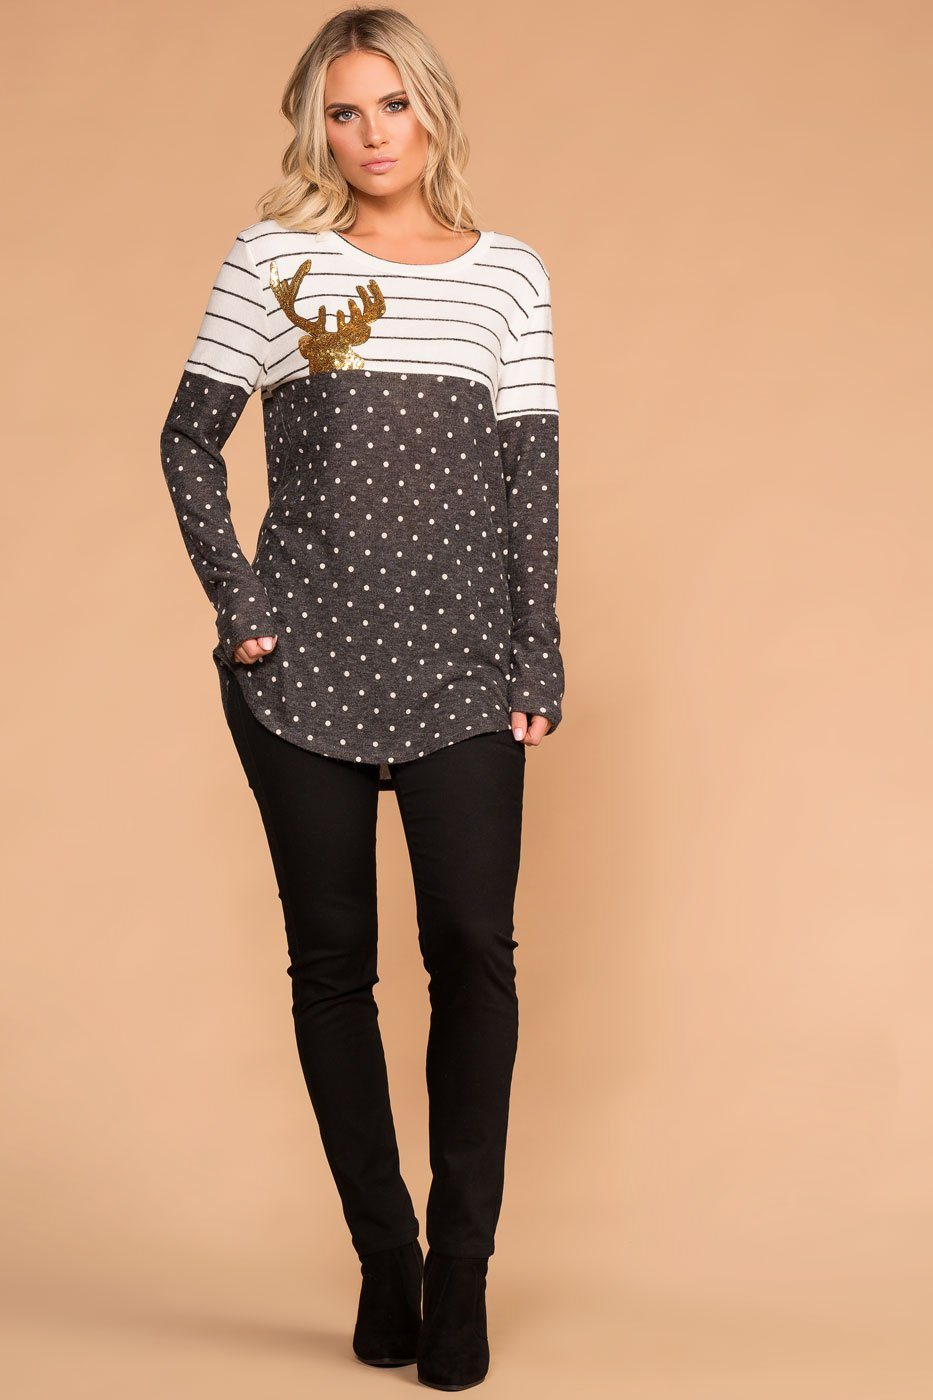 Priceless | Stripe Polka Dot Sequin Deer Top | Long Sleeve | Womens